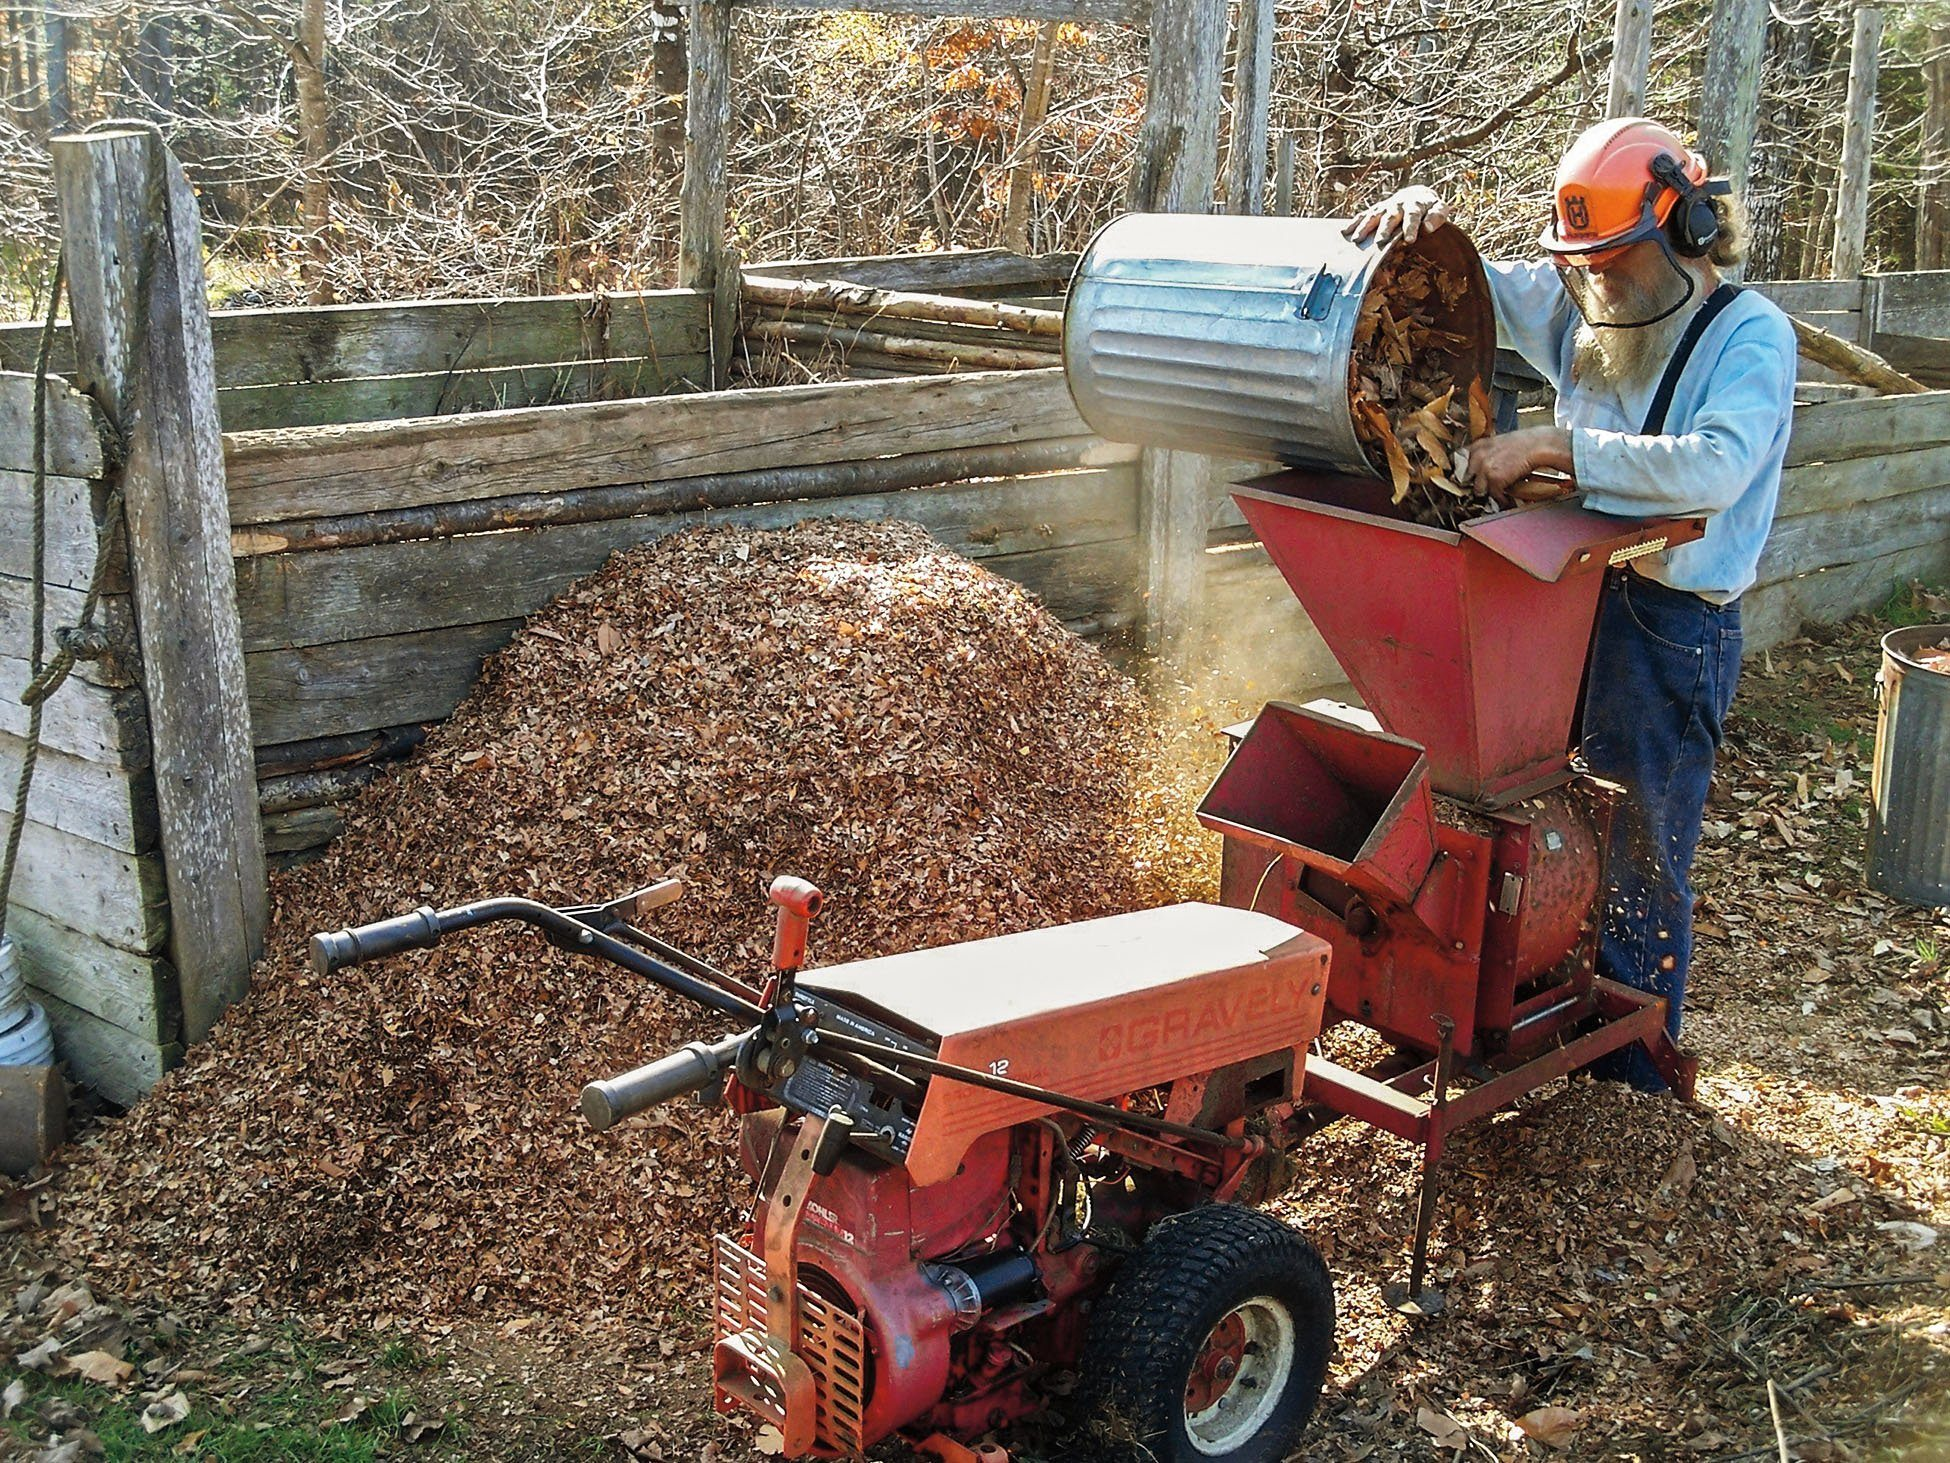 best leaf mulcher - equiped man operating leaf mulcher